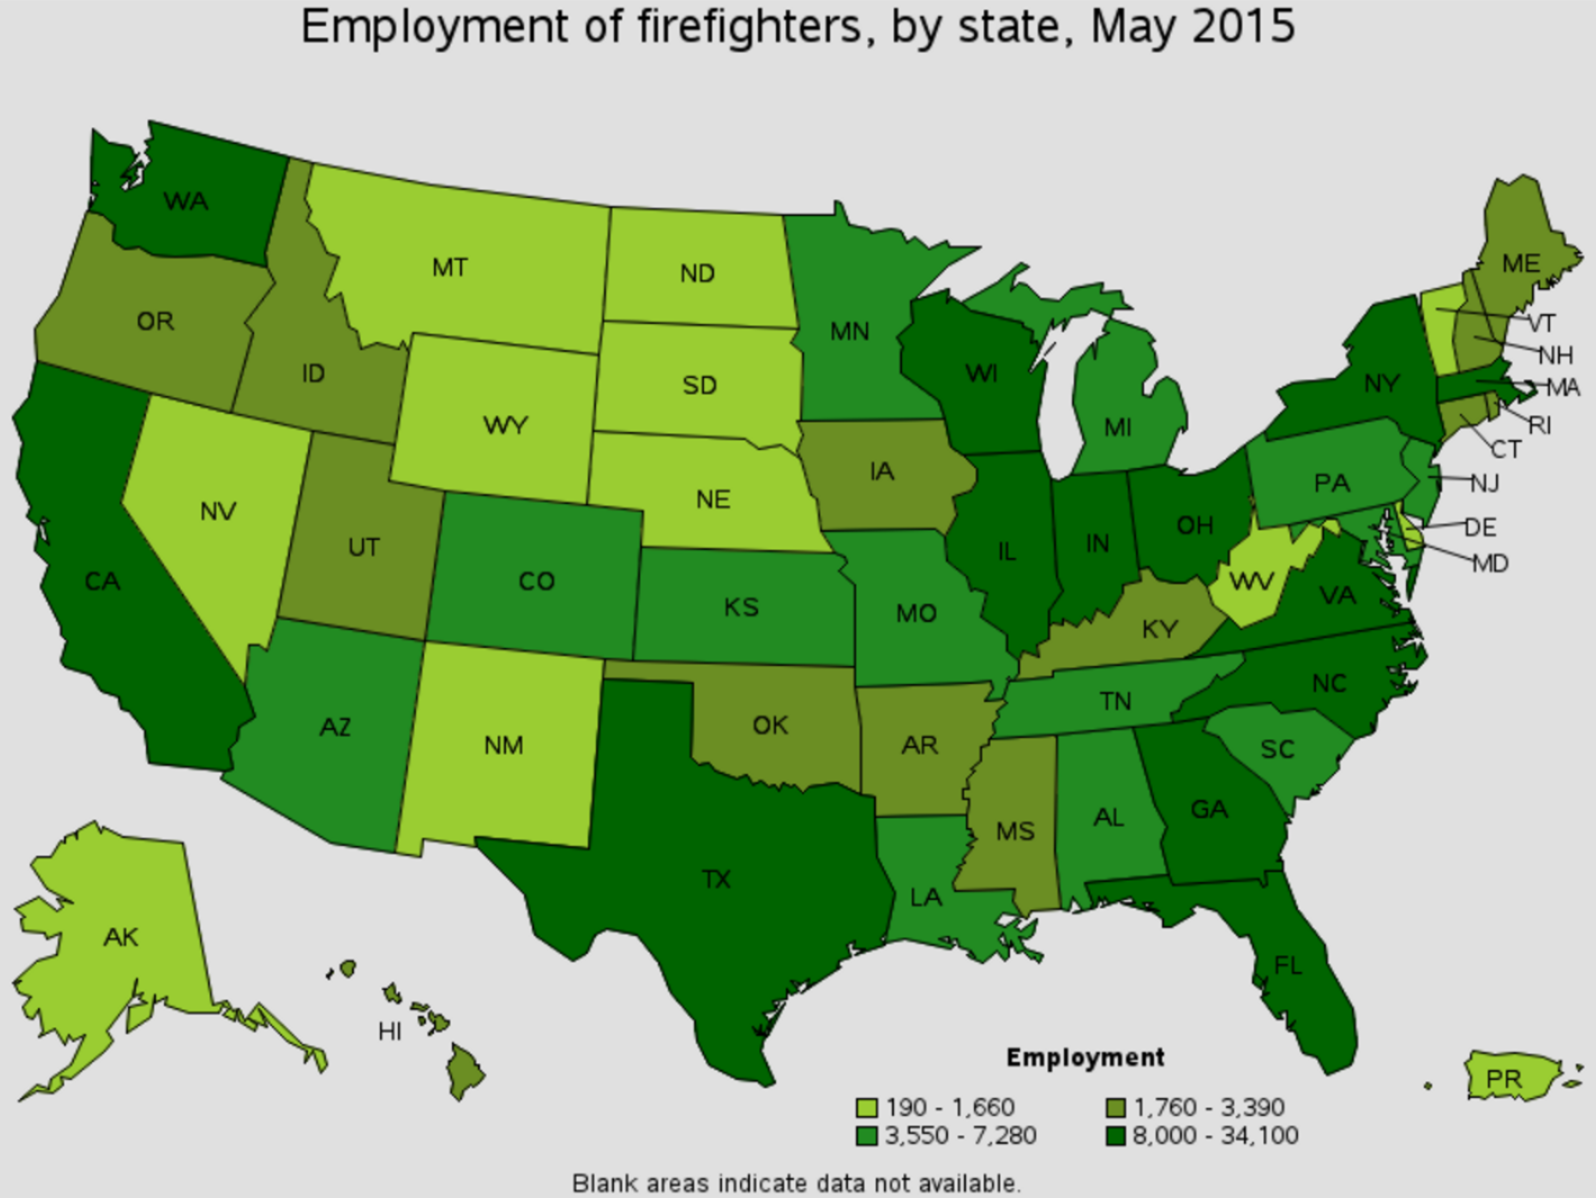 firefighter job outlook by state Wonewoc Wisconsin